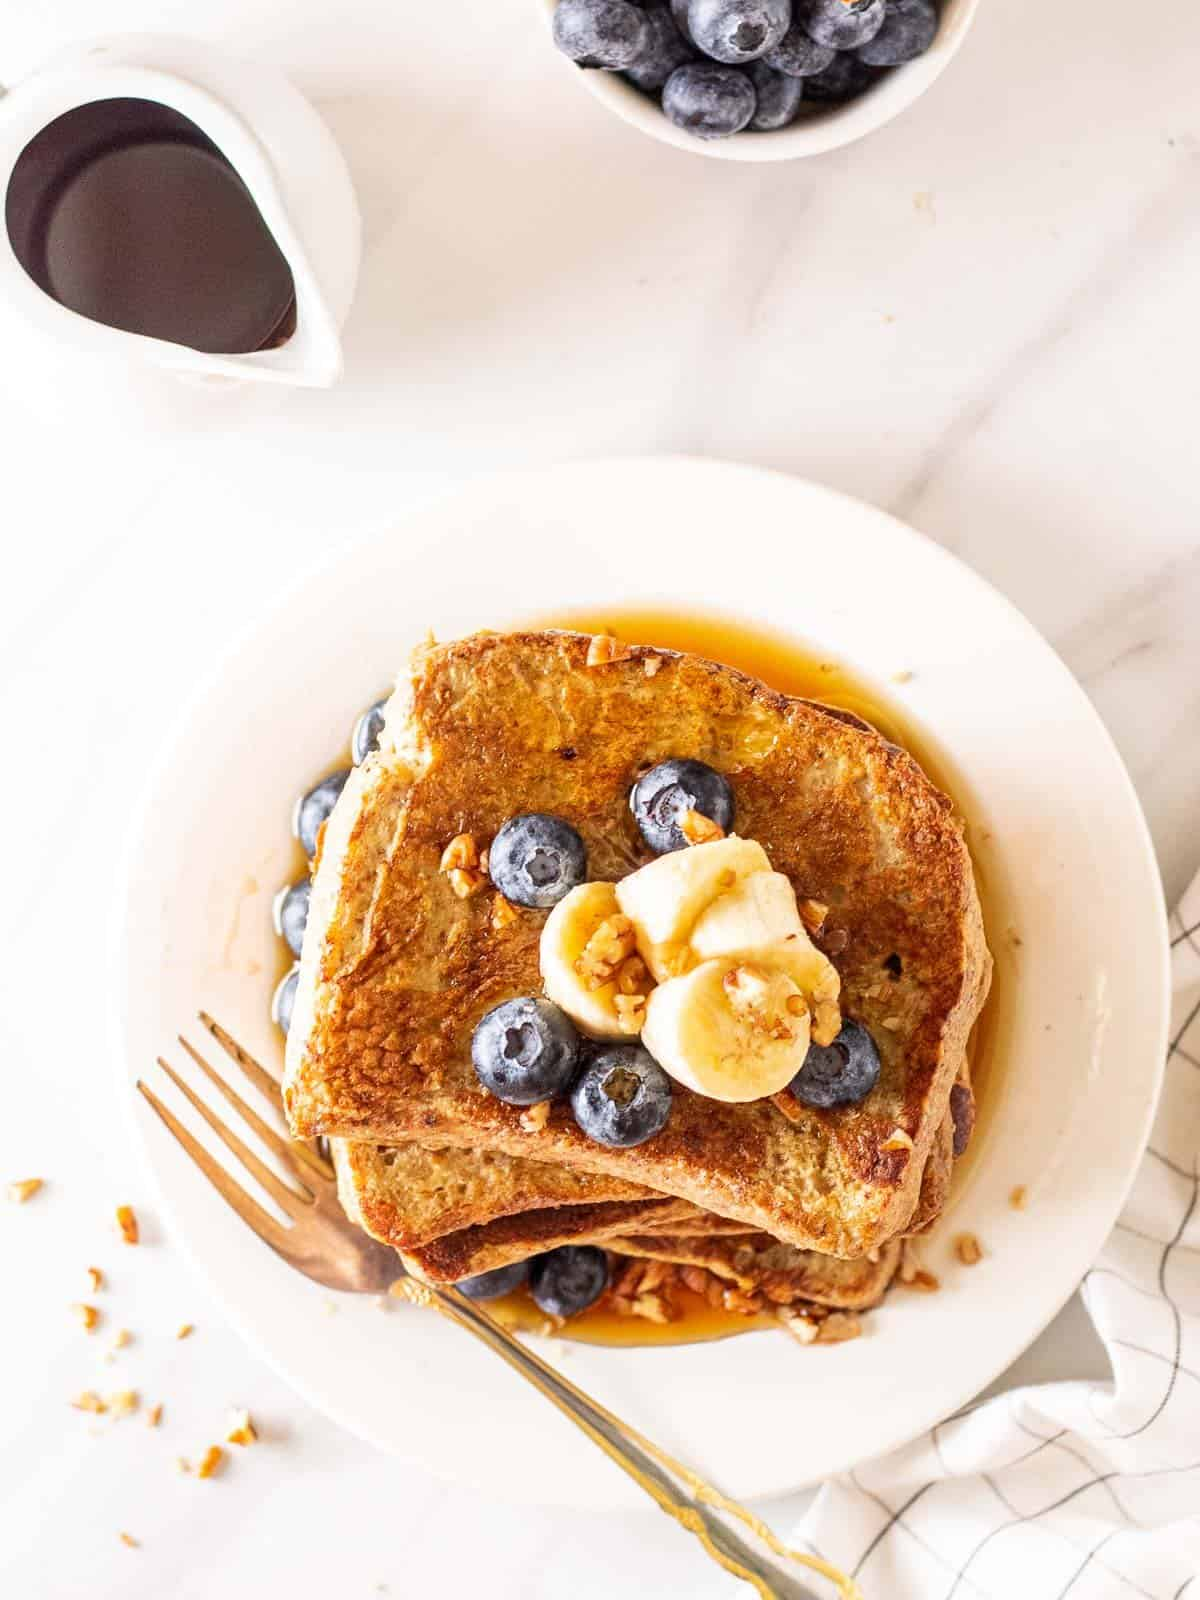 A stack of French toast served on a white plate topped with banana slices, blueberries and chopped pecans with a fork. There is a pot of maple syrup and a bowl of blueberries in the background.